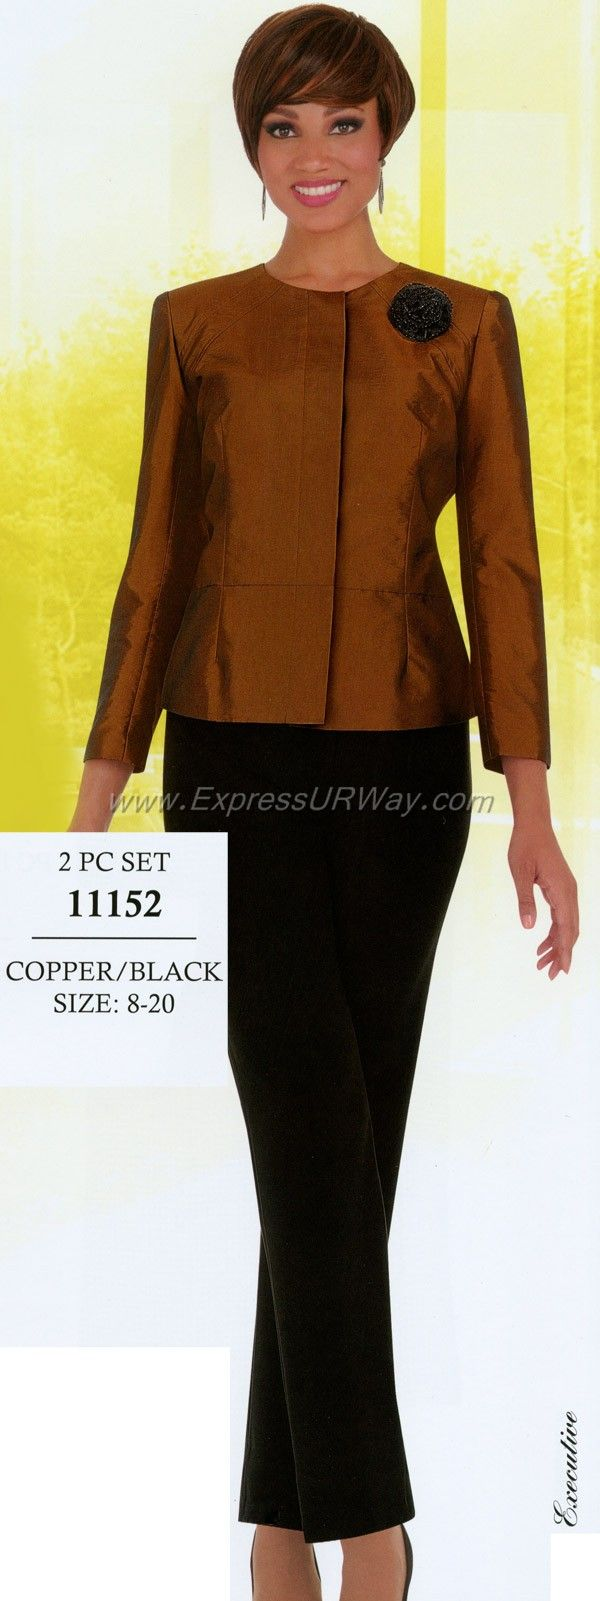 Ben Marc Executive - Fall 2013 - www.ExpressURWay.com -  Womens Career Suits, Ben Marc, Business Suit, Womens Business Suit, Career Suit, Career Suit For Women